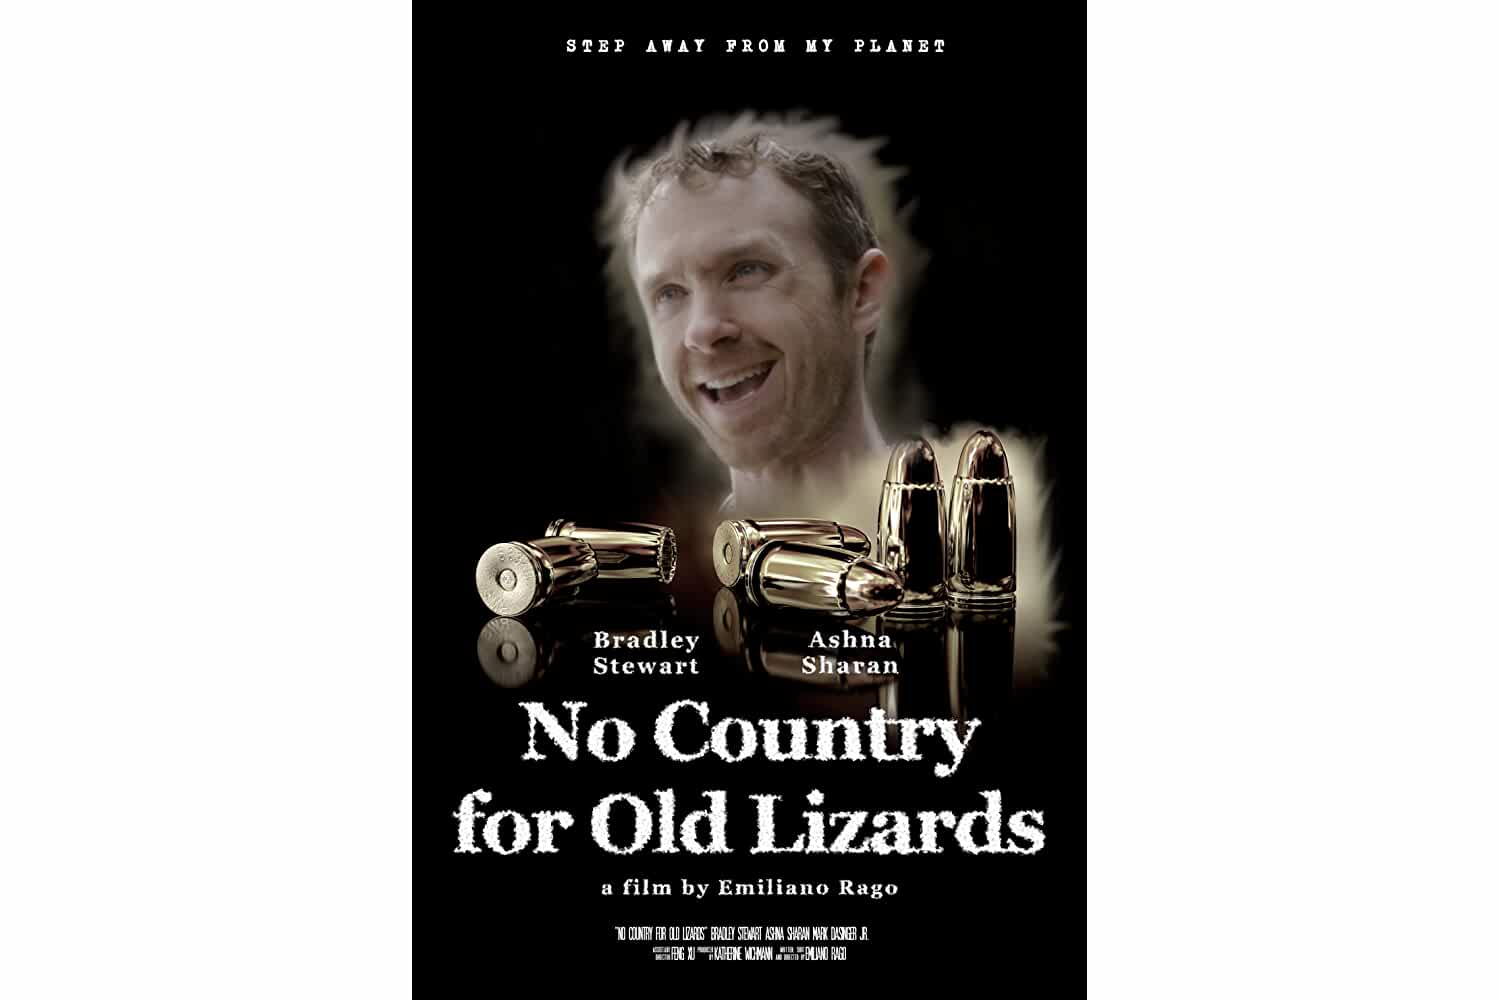 No Country for Old Lizards (2018)